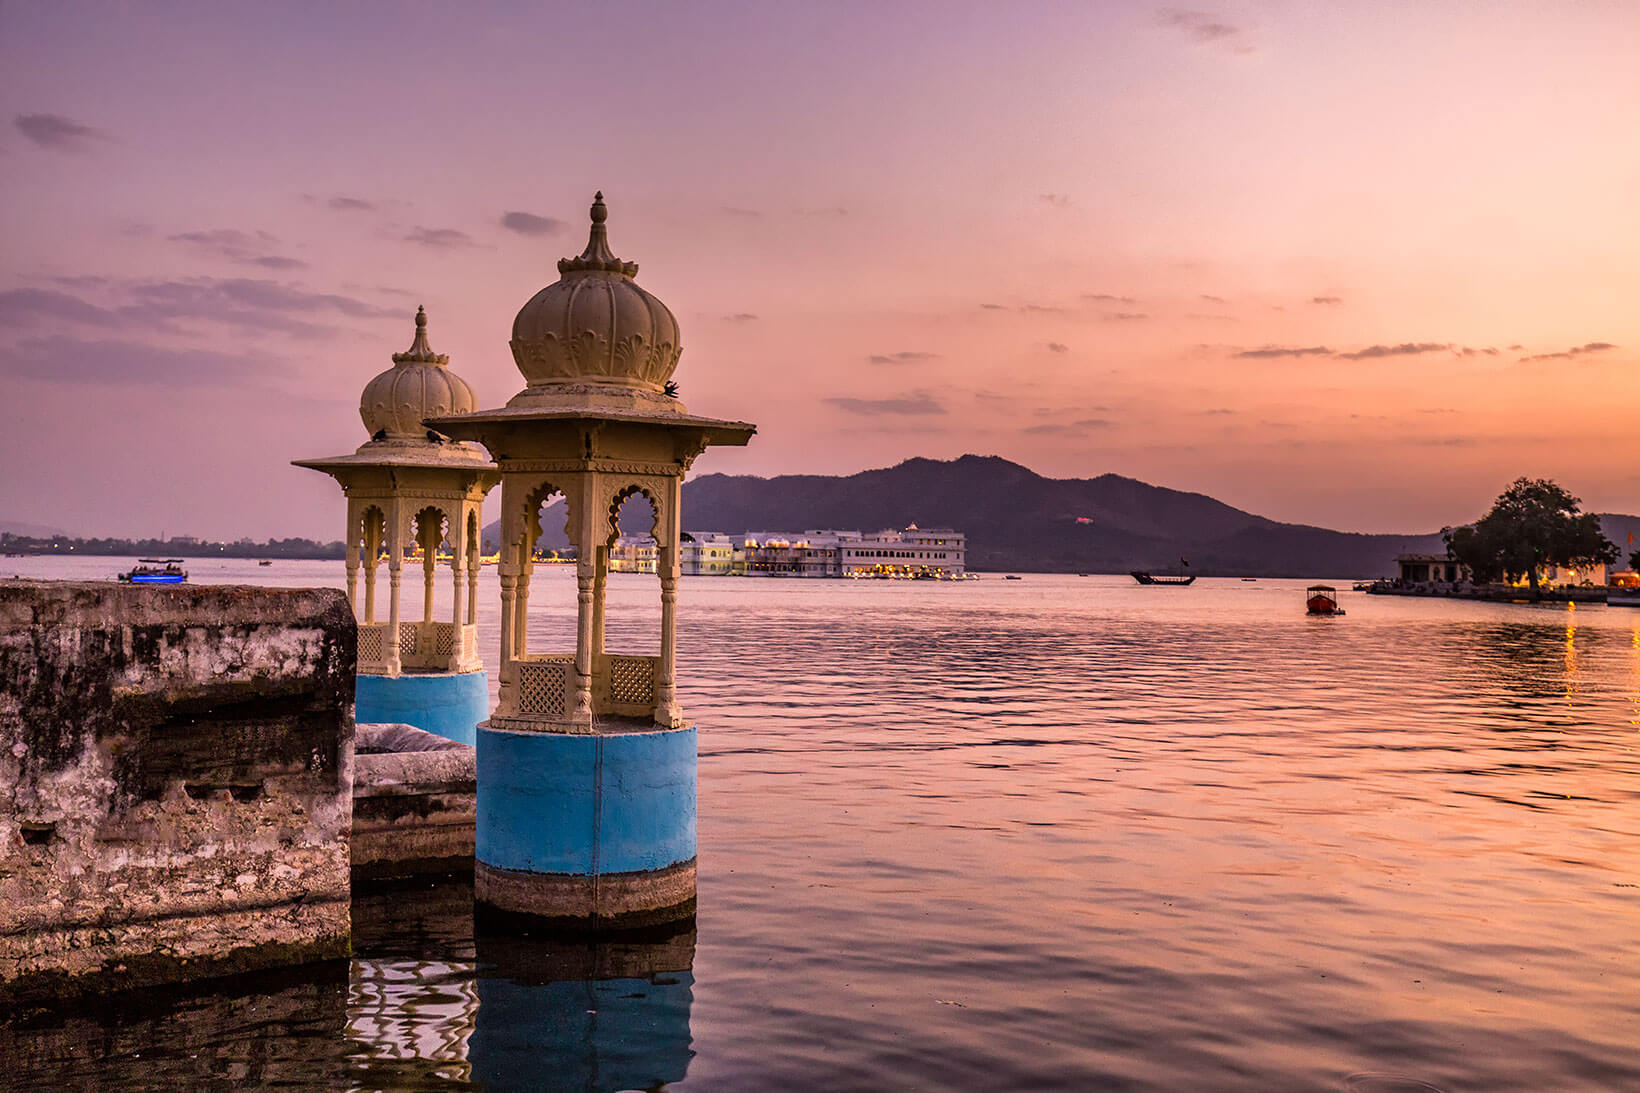 Udaipur Hotels 3 Star Hotels in Udaipur | BO...